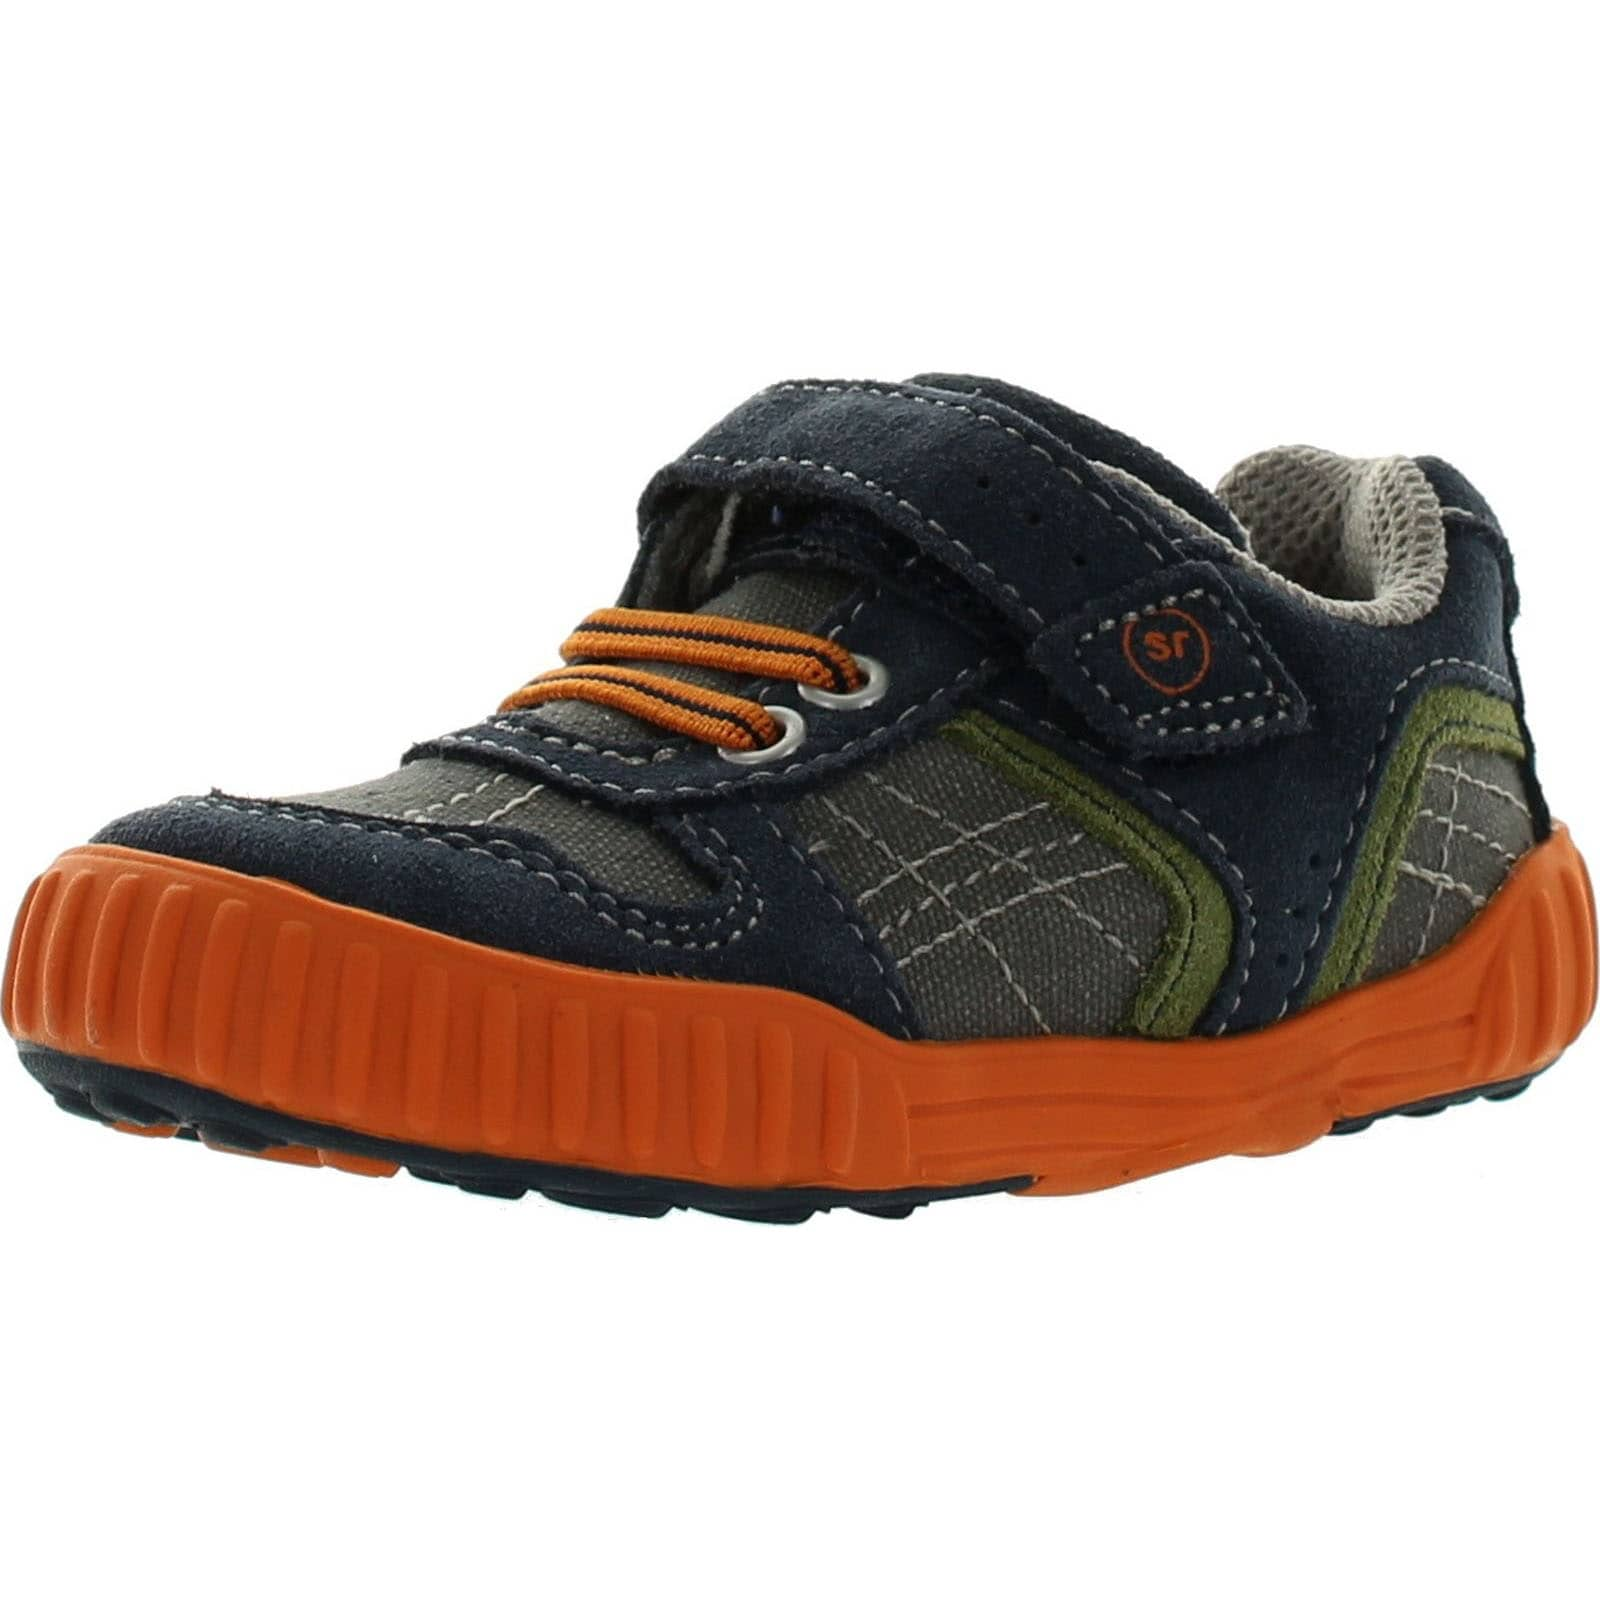 Stride Rite Kids Boys Srt Travis Rubber Sneakers - Free Shipping On Orders  Over $45 - Overstock.com - 20954277